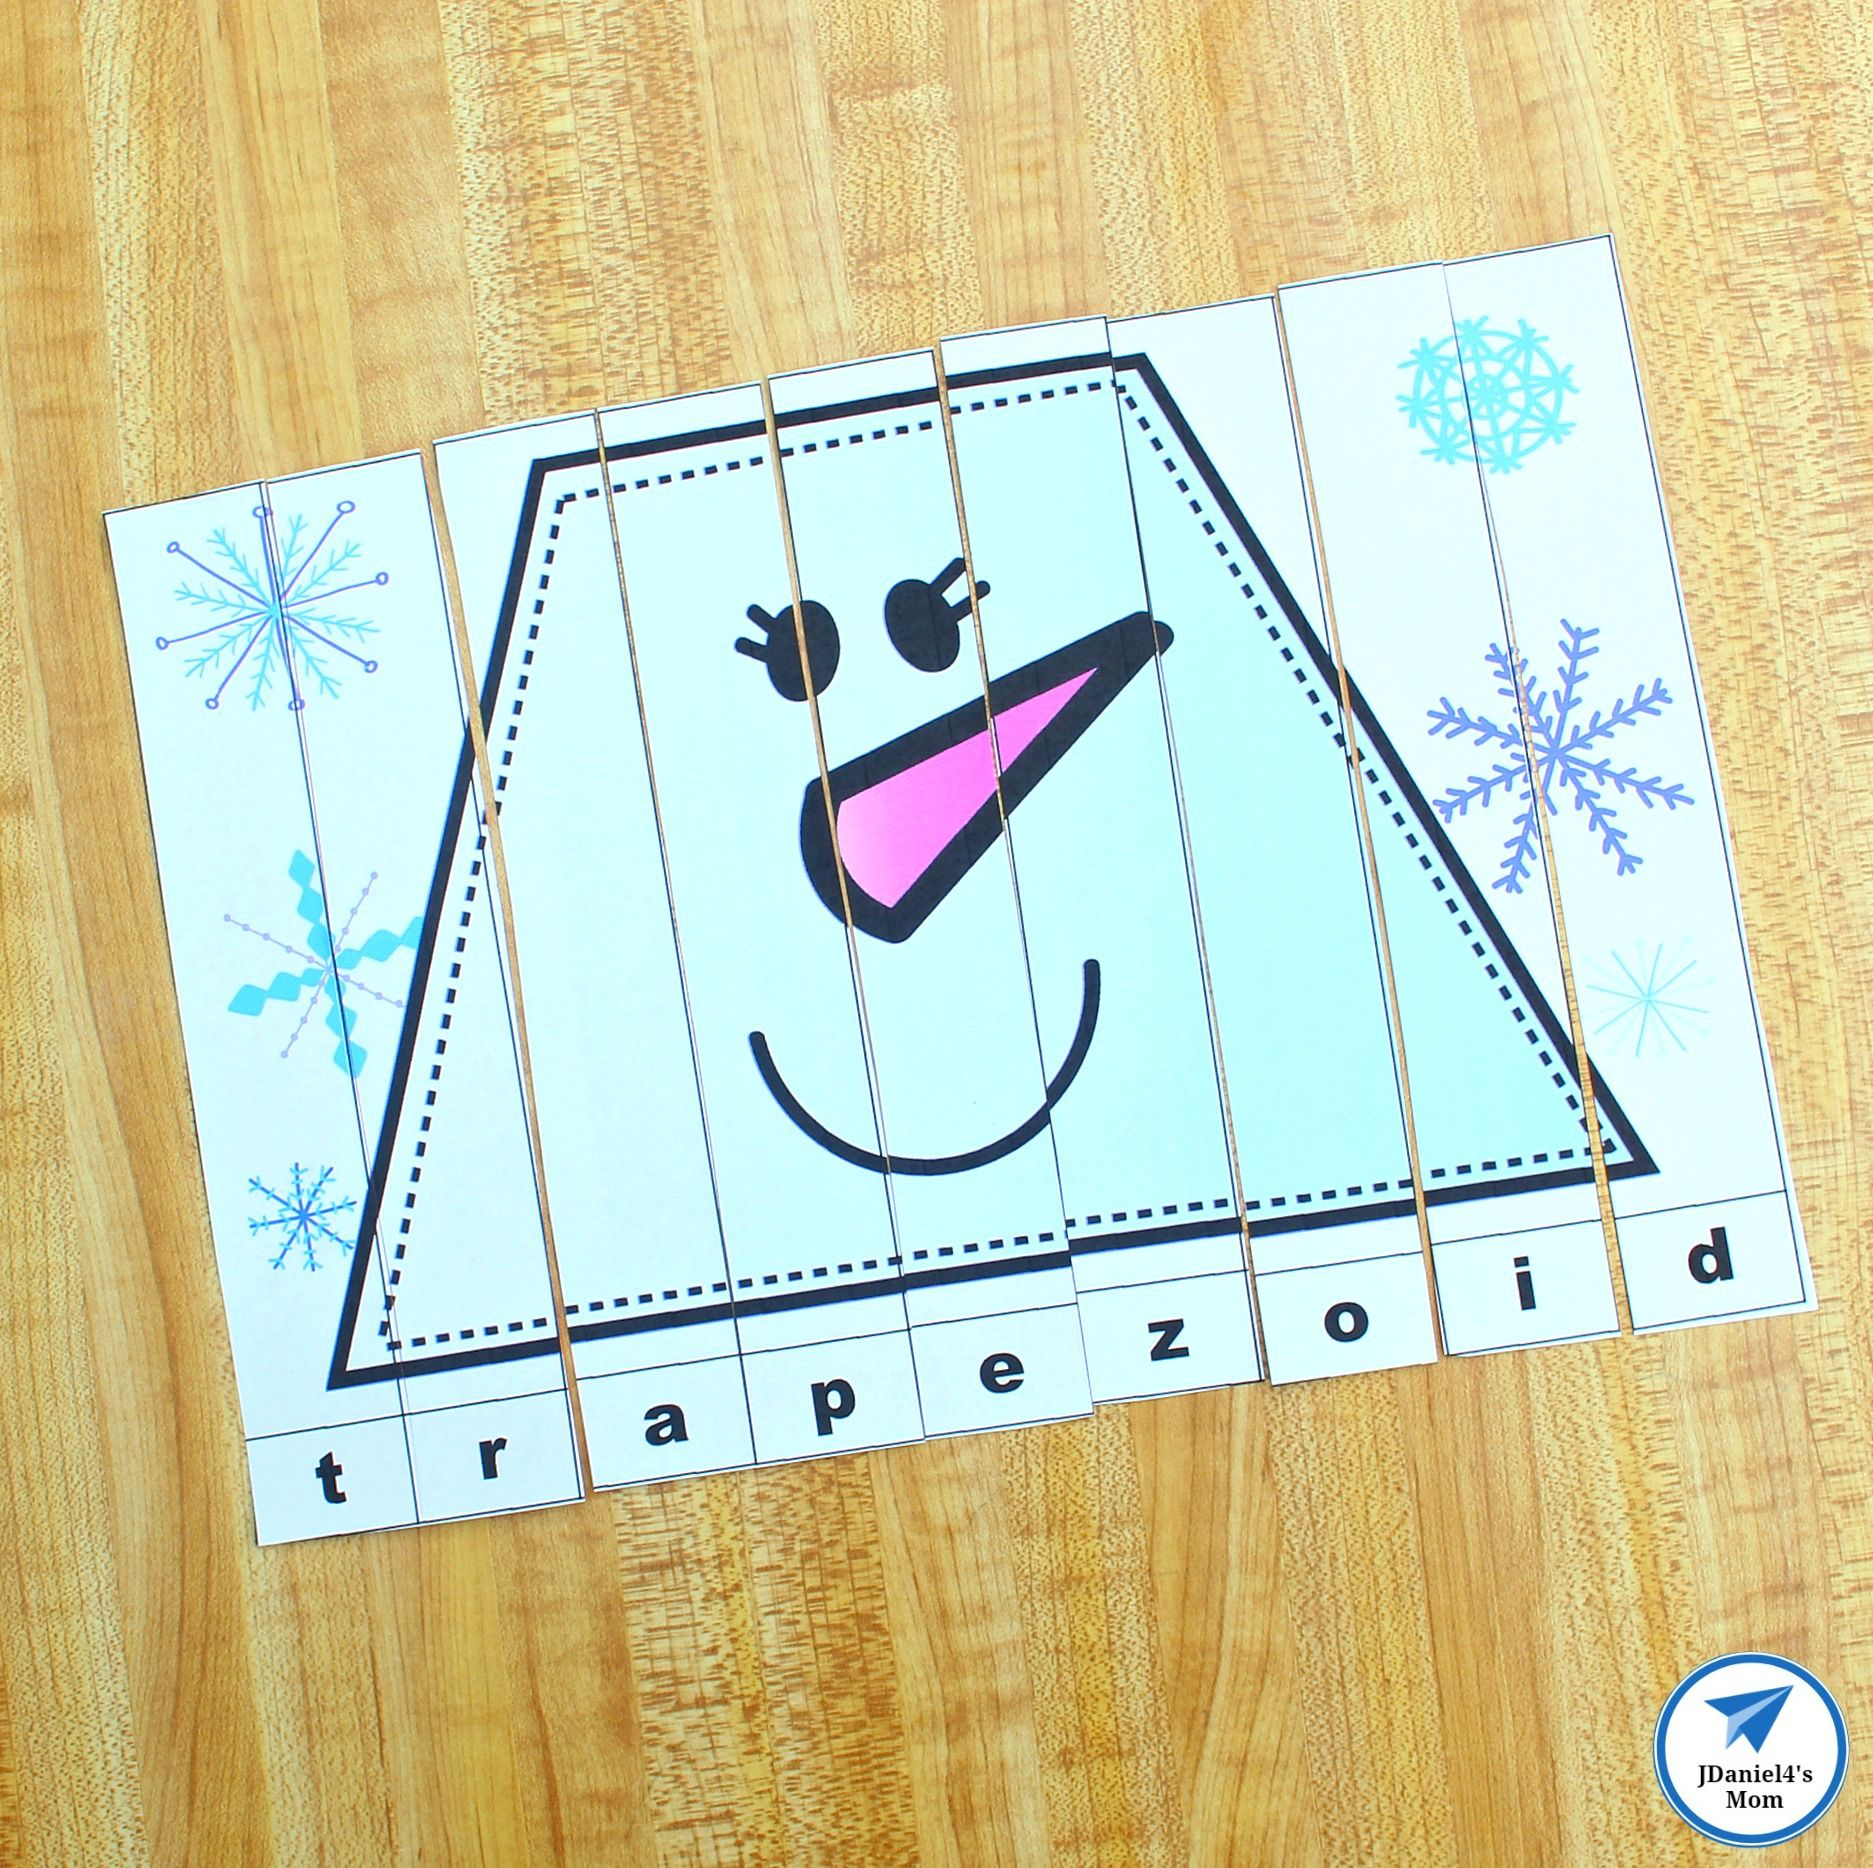 Snowman Shapes For Kids Printable Puzzles This Is The Trapezoid Puzzle Shapes Preschool Shape Activities Preschool Shapes For Kids [ 1868 x 1873 Pixel ]